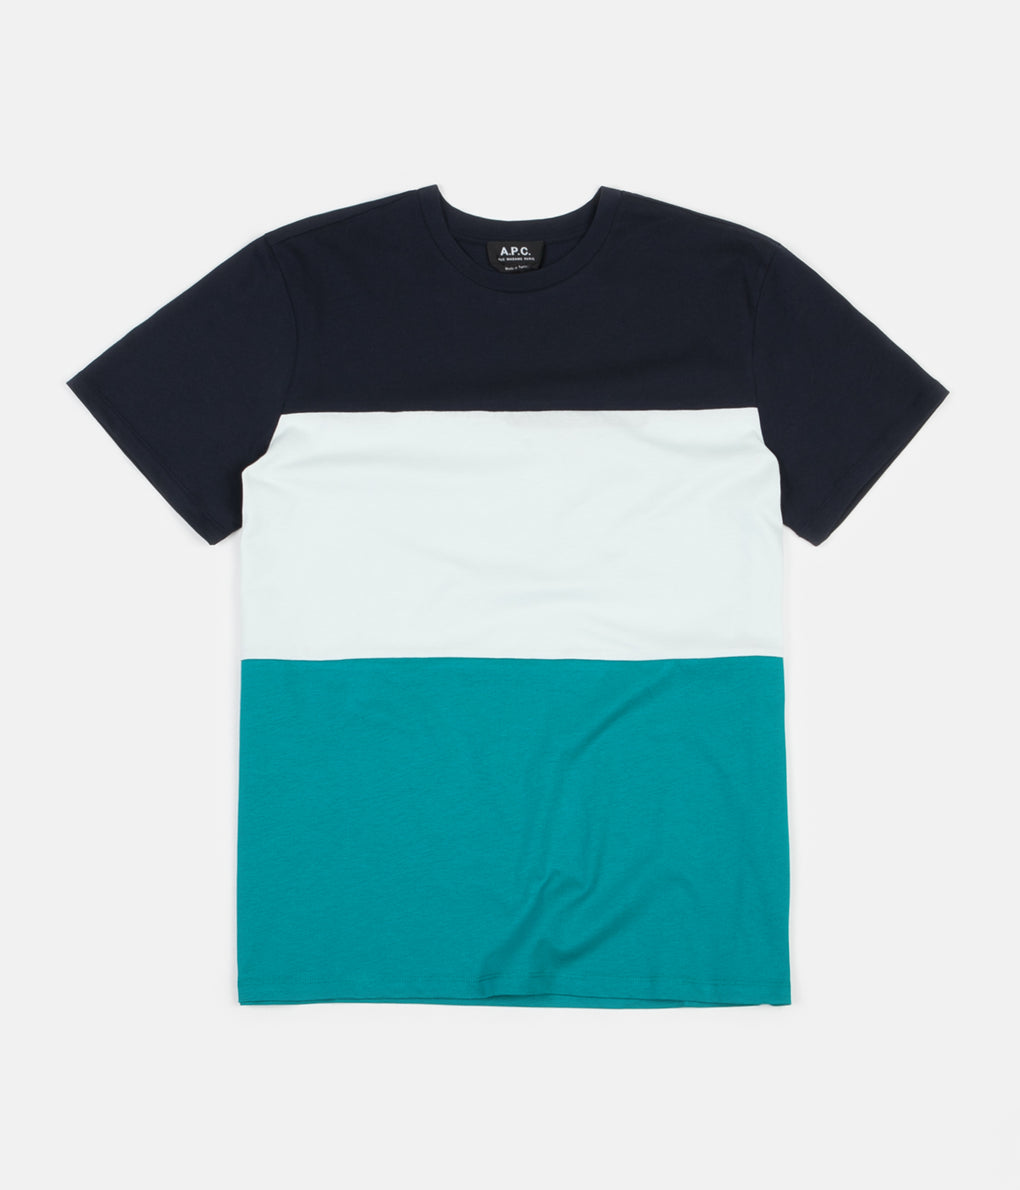 A.P.C. Pedro T-Shirt - Green